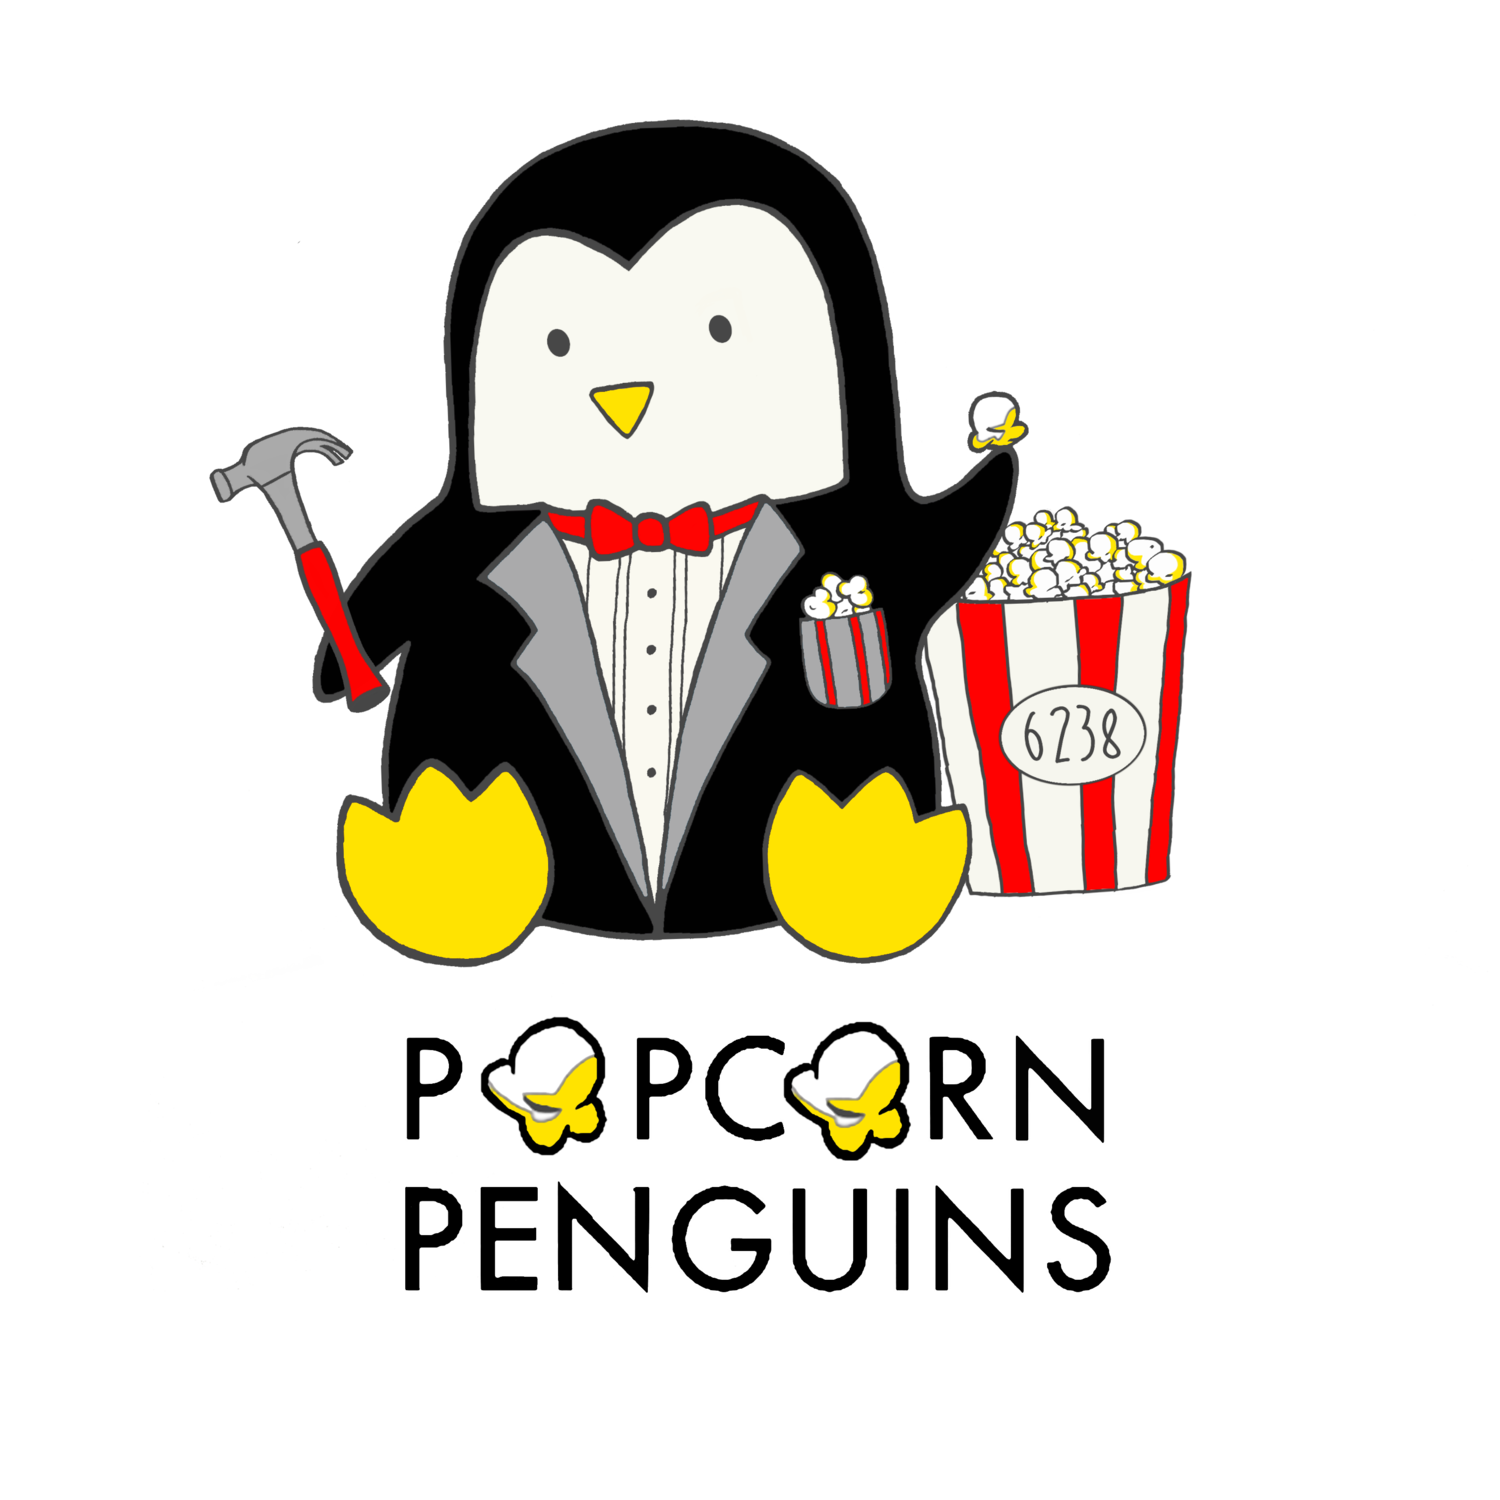 Popcorn Penguins